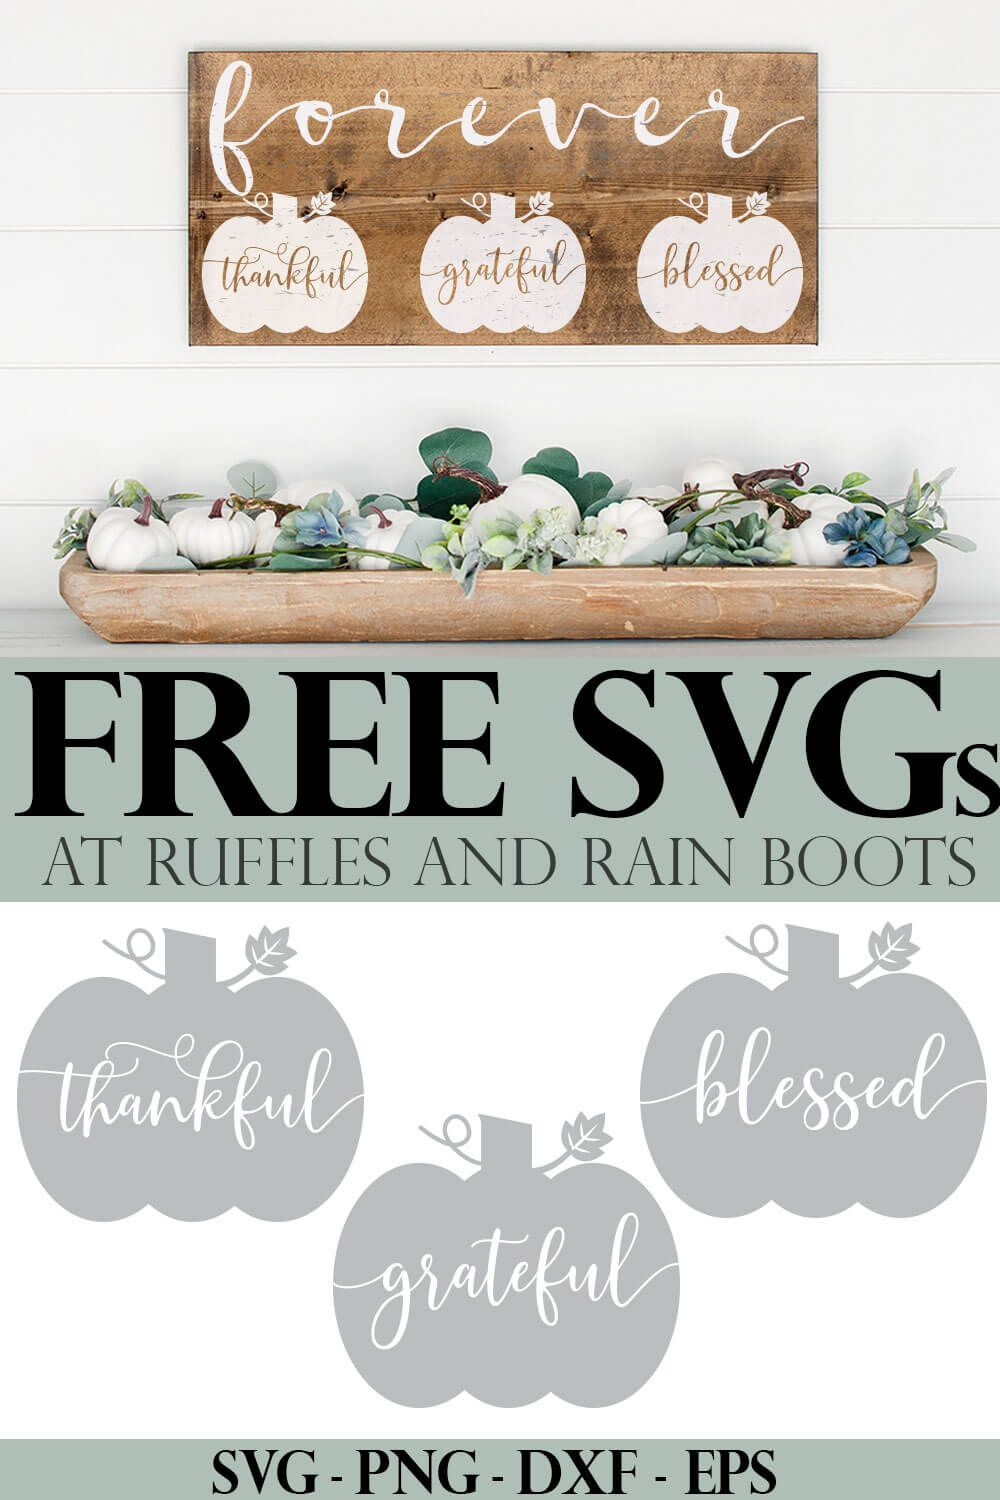 I love these fun pumpkin cut files for Cricut or Silhouette. They're just so perfect for making fall farmhouse decor. Click through to get the free fall SVGs to make awesome crafts! #svg #freesvg #cricut #cutfiles #silhouette #fall #fallsvg #pumpkincutfile #pumpkinsvg #rufflesandrainboots